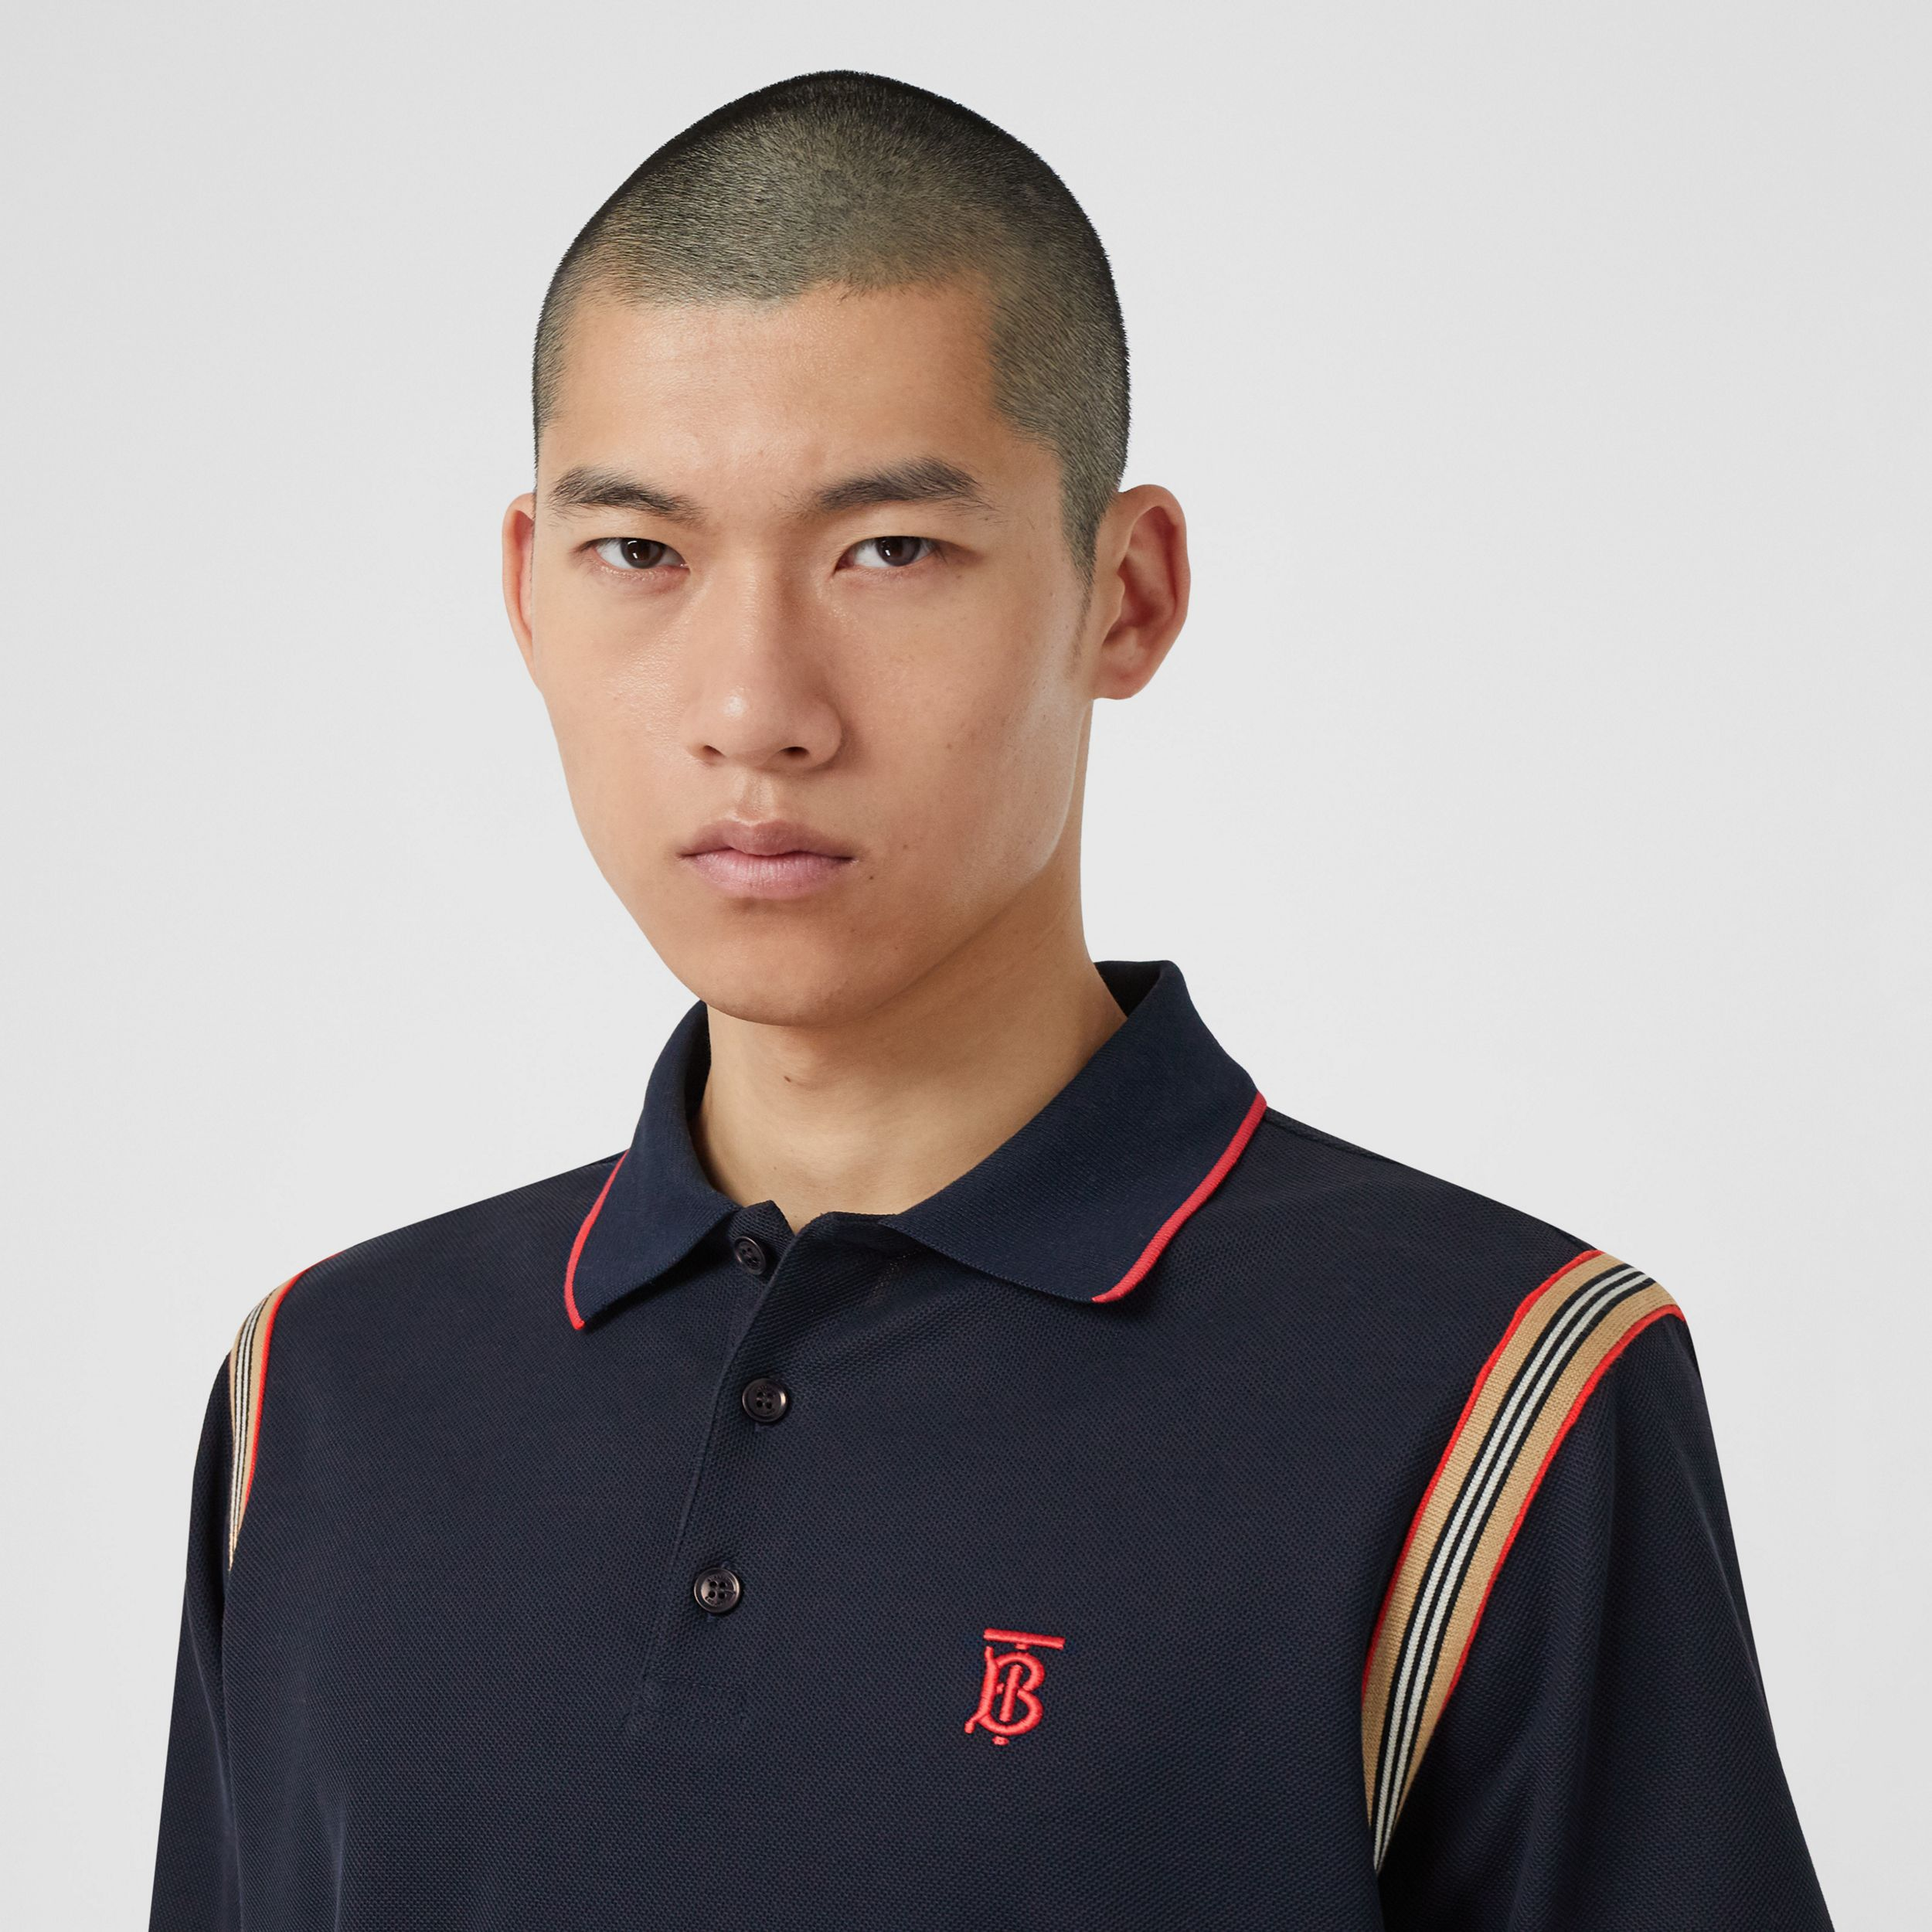 Icon Stripe Trim Monogram Motif Cotton Polo Shirt in Navy - Men | Burberry - 2